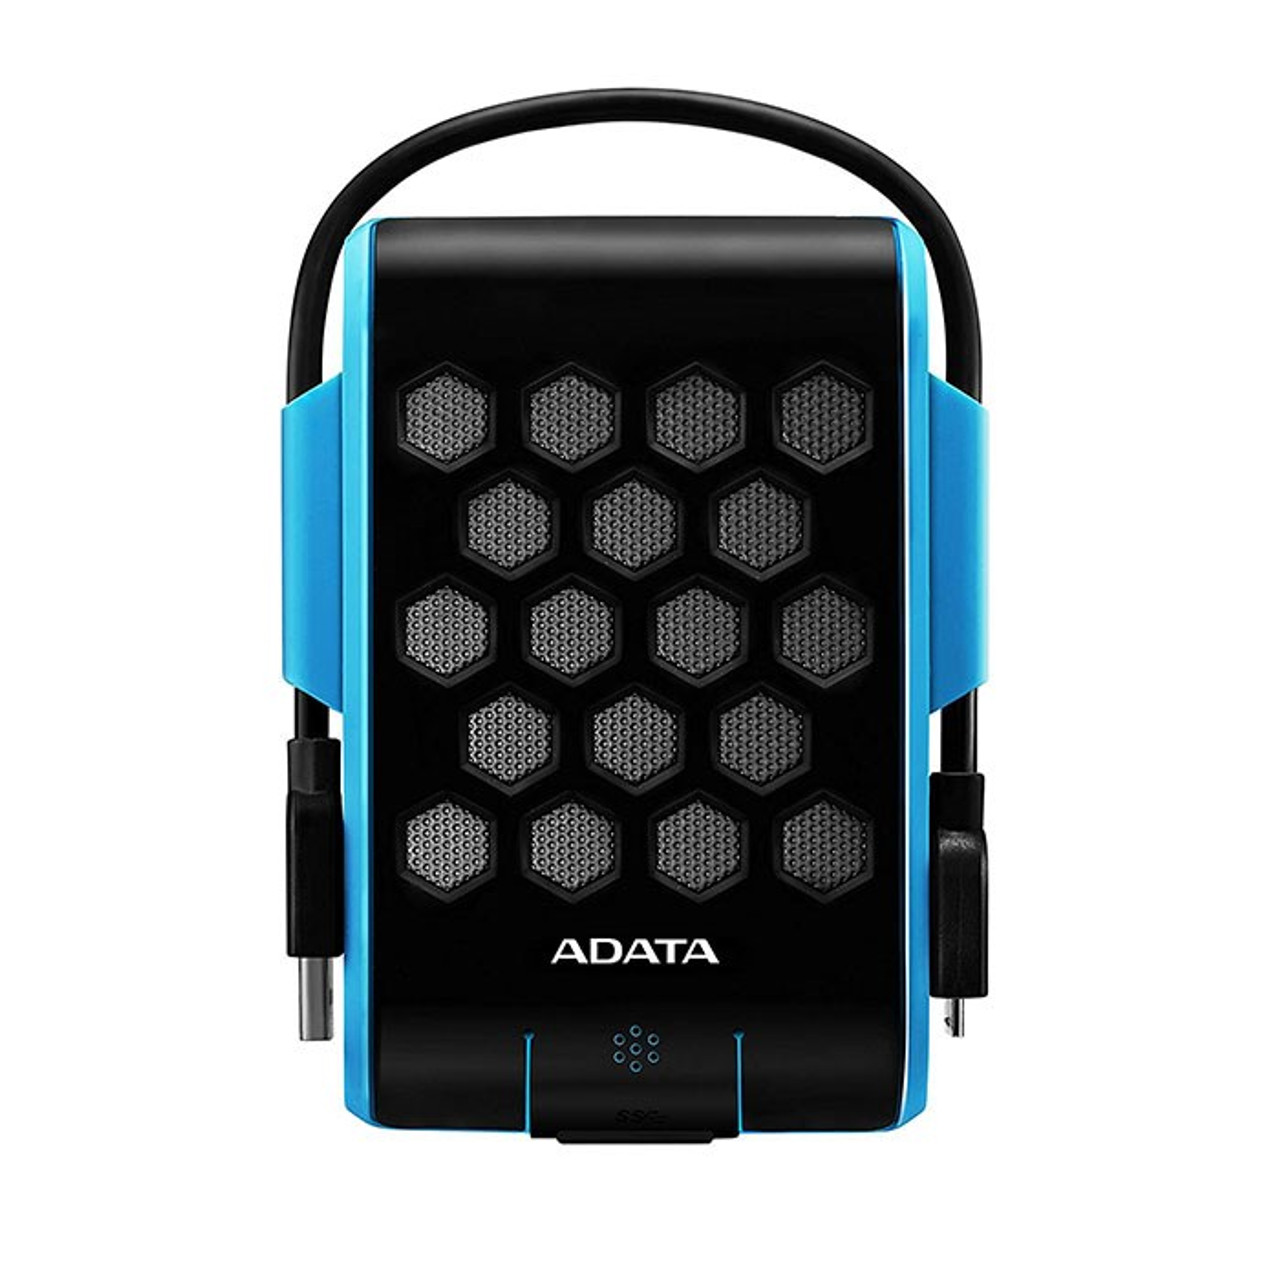 Image for Adata HD720 1TB USB 3.0 Military-Grade Shockproof Portable External HDD - Blue CX Computer Superstore